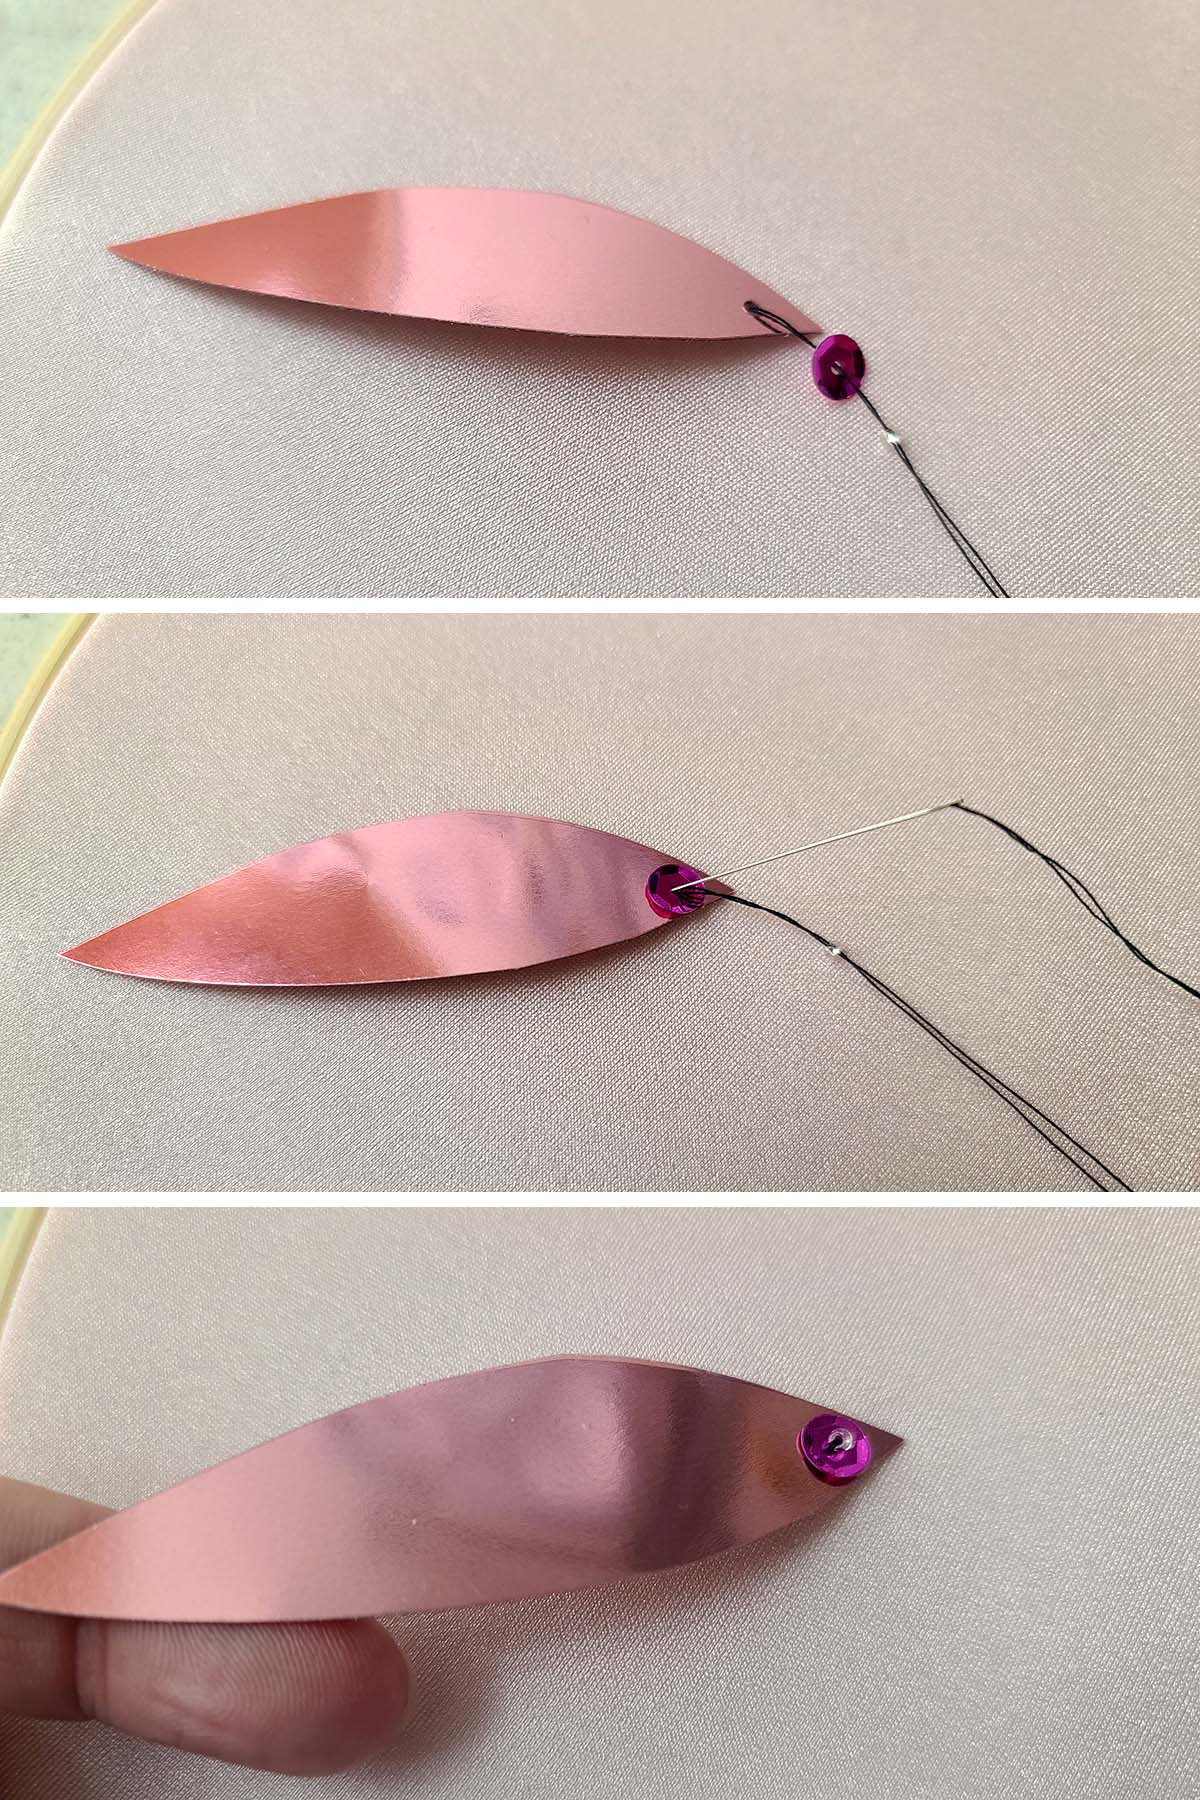 A three part compilation image shows a long leaf shaped pink spangle being sewn to a piece of stretched pink spandex, with a small pink sequin and a seed bead.